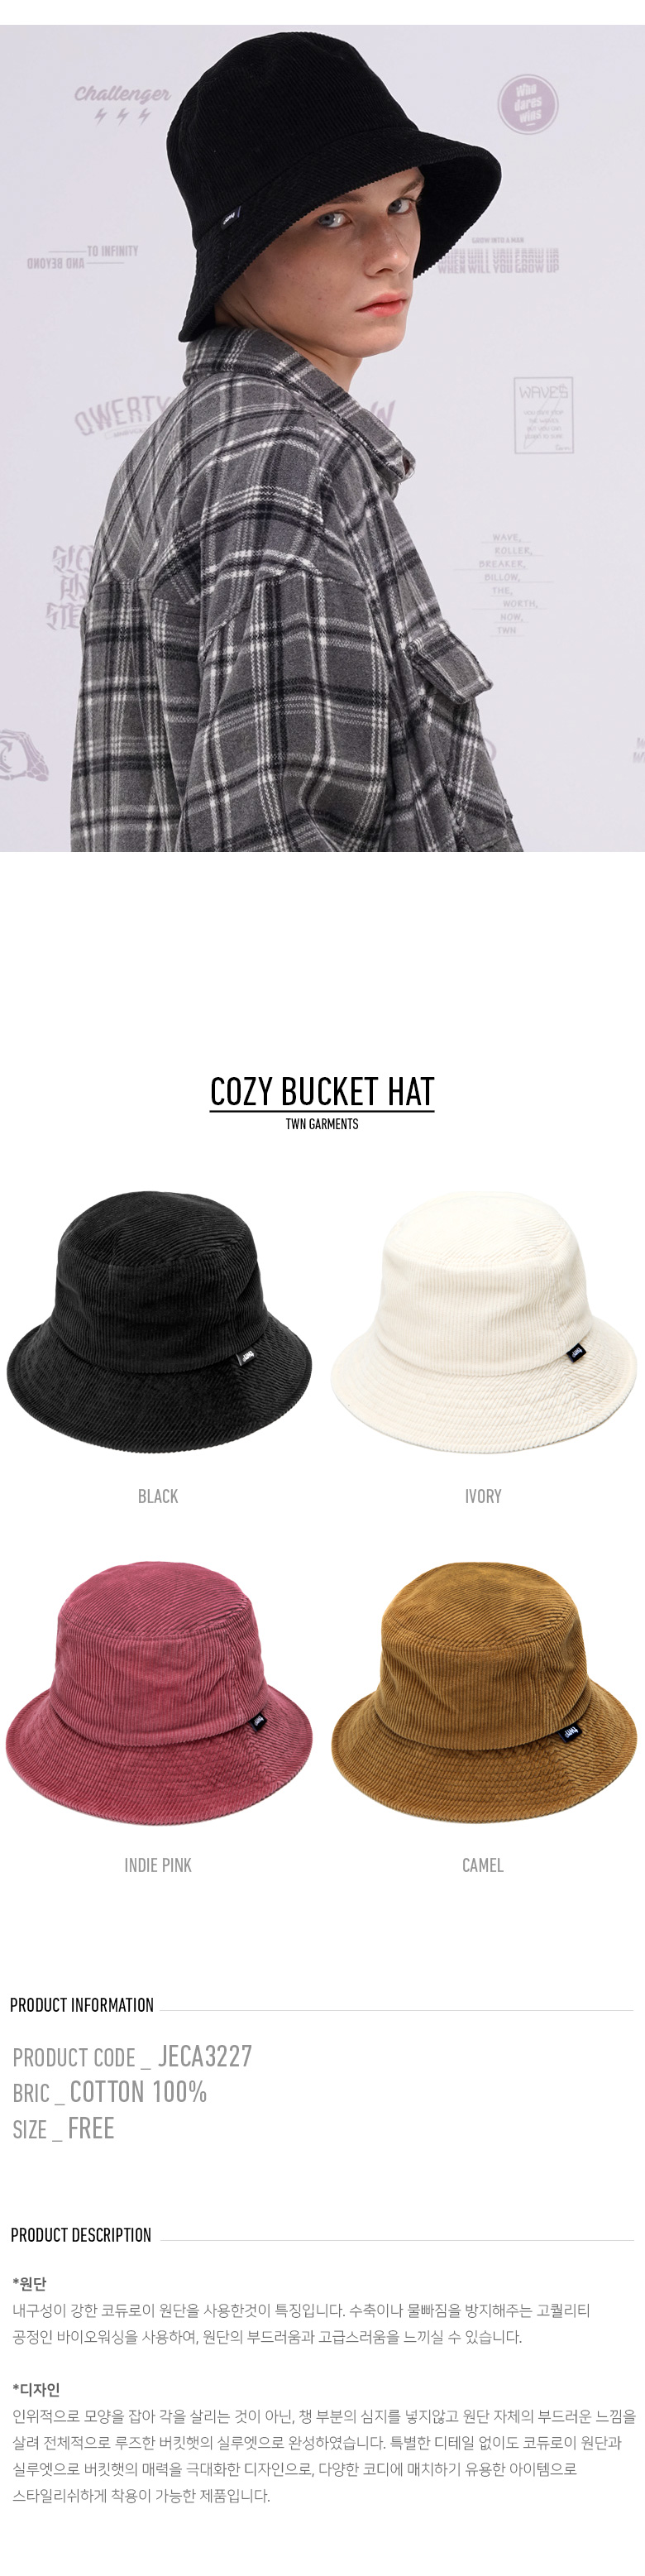 20190819_twn_cozybucket_intro_je.jpg